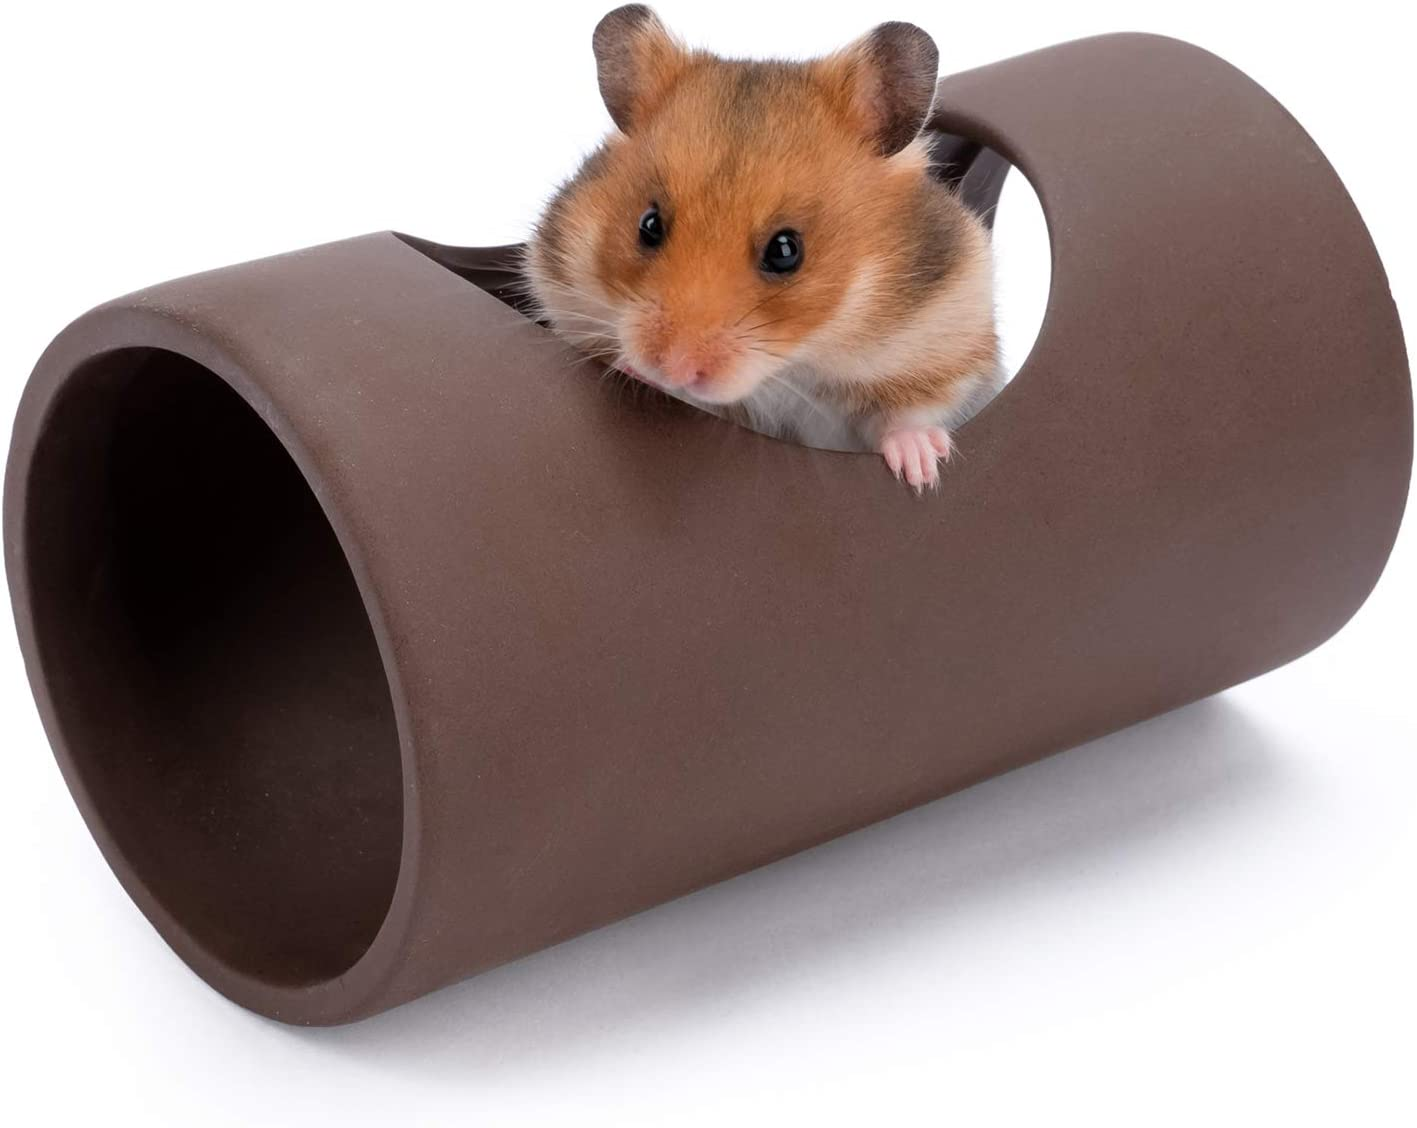 Niteangel Ceramic Hamster Tunnel & Tubes Hideout: for Dwarf Robo Syrian Hamsters Mice Rats or Other Small Animals